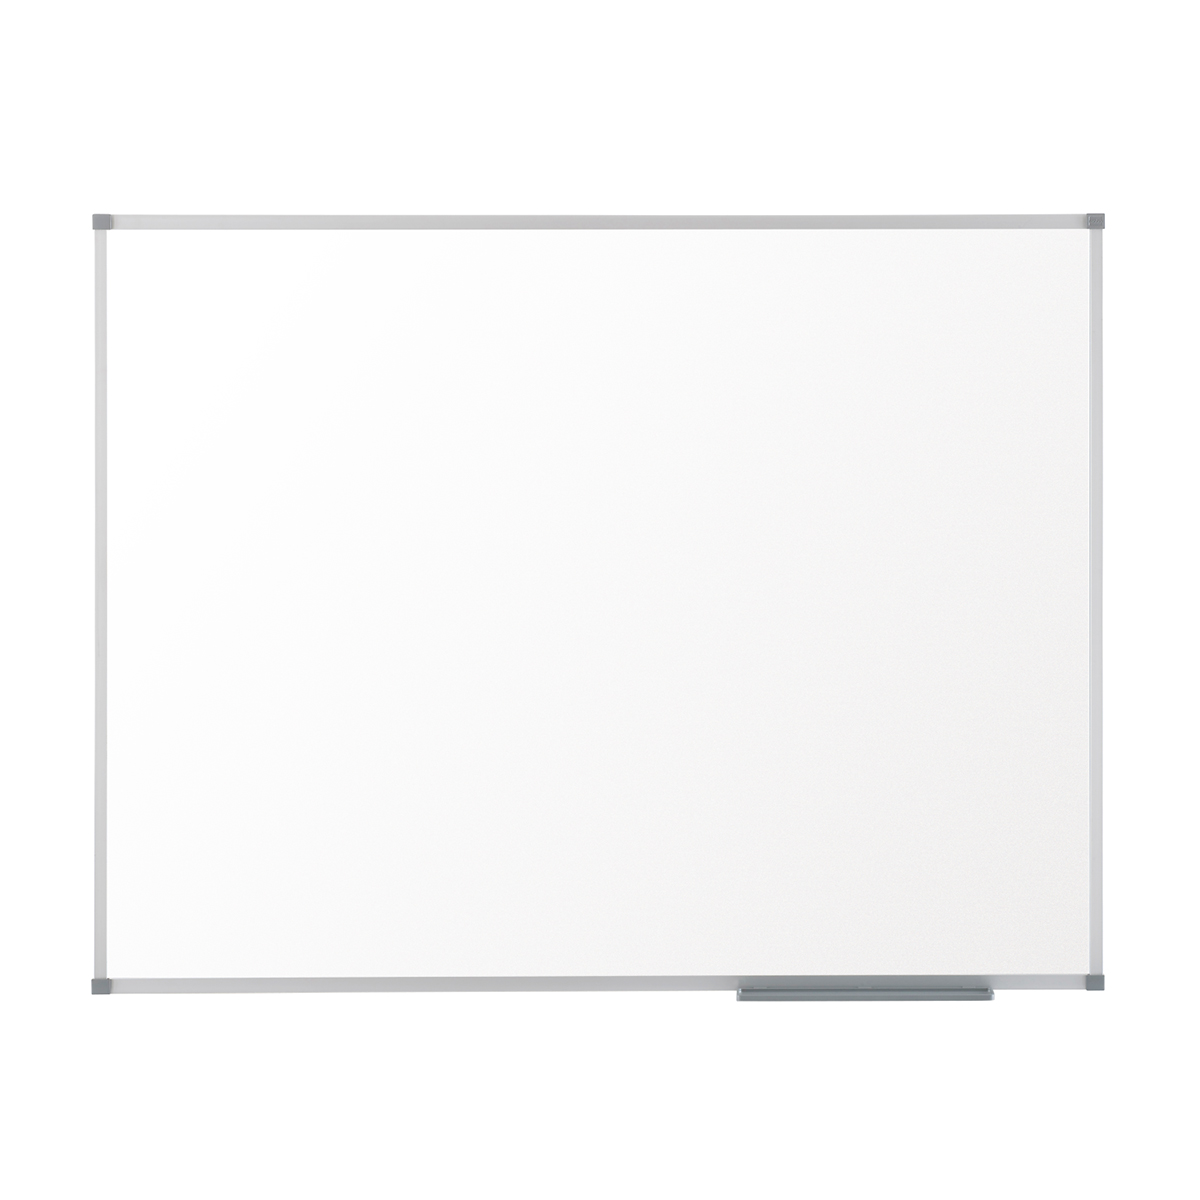 Nobo 1905203 Basic Melamine Non Magnetic Whiteboard with Basic Trim 1200 x 900mm